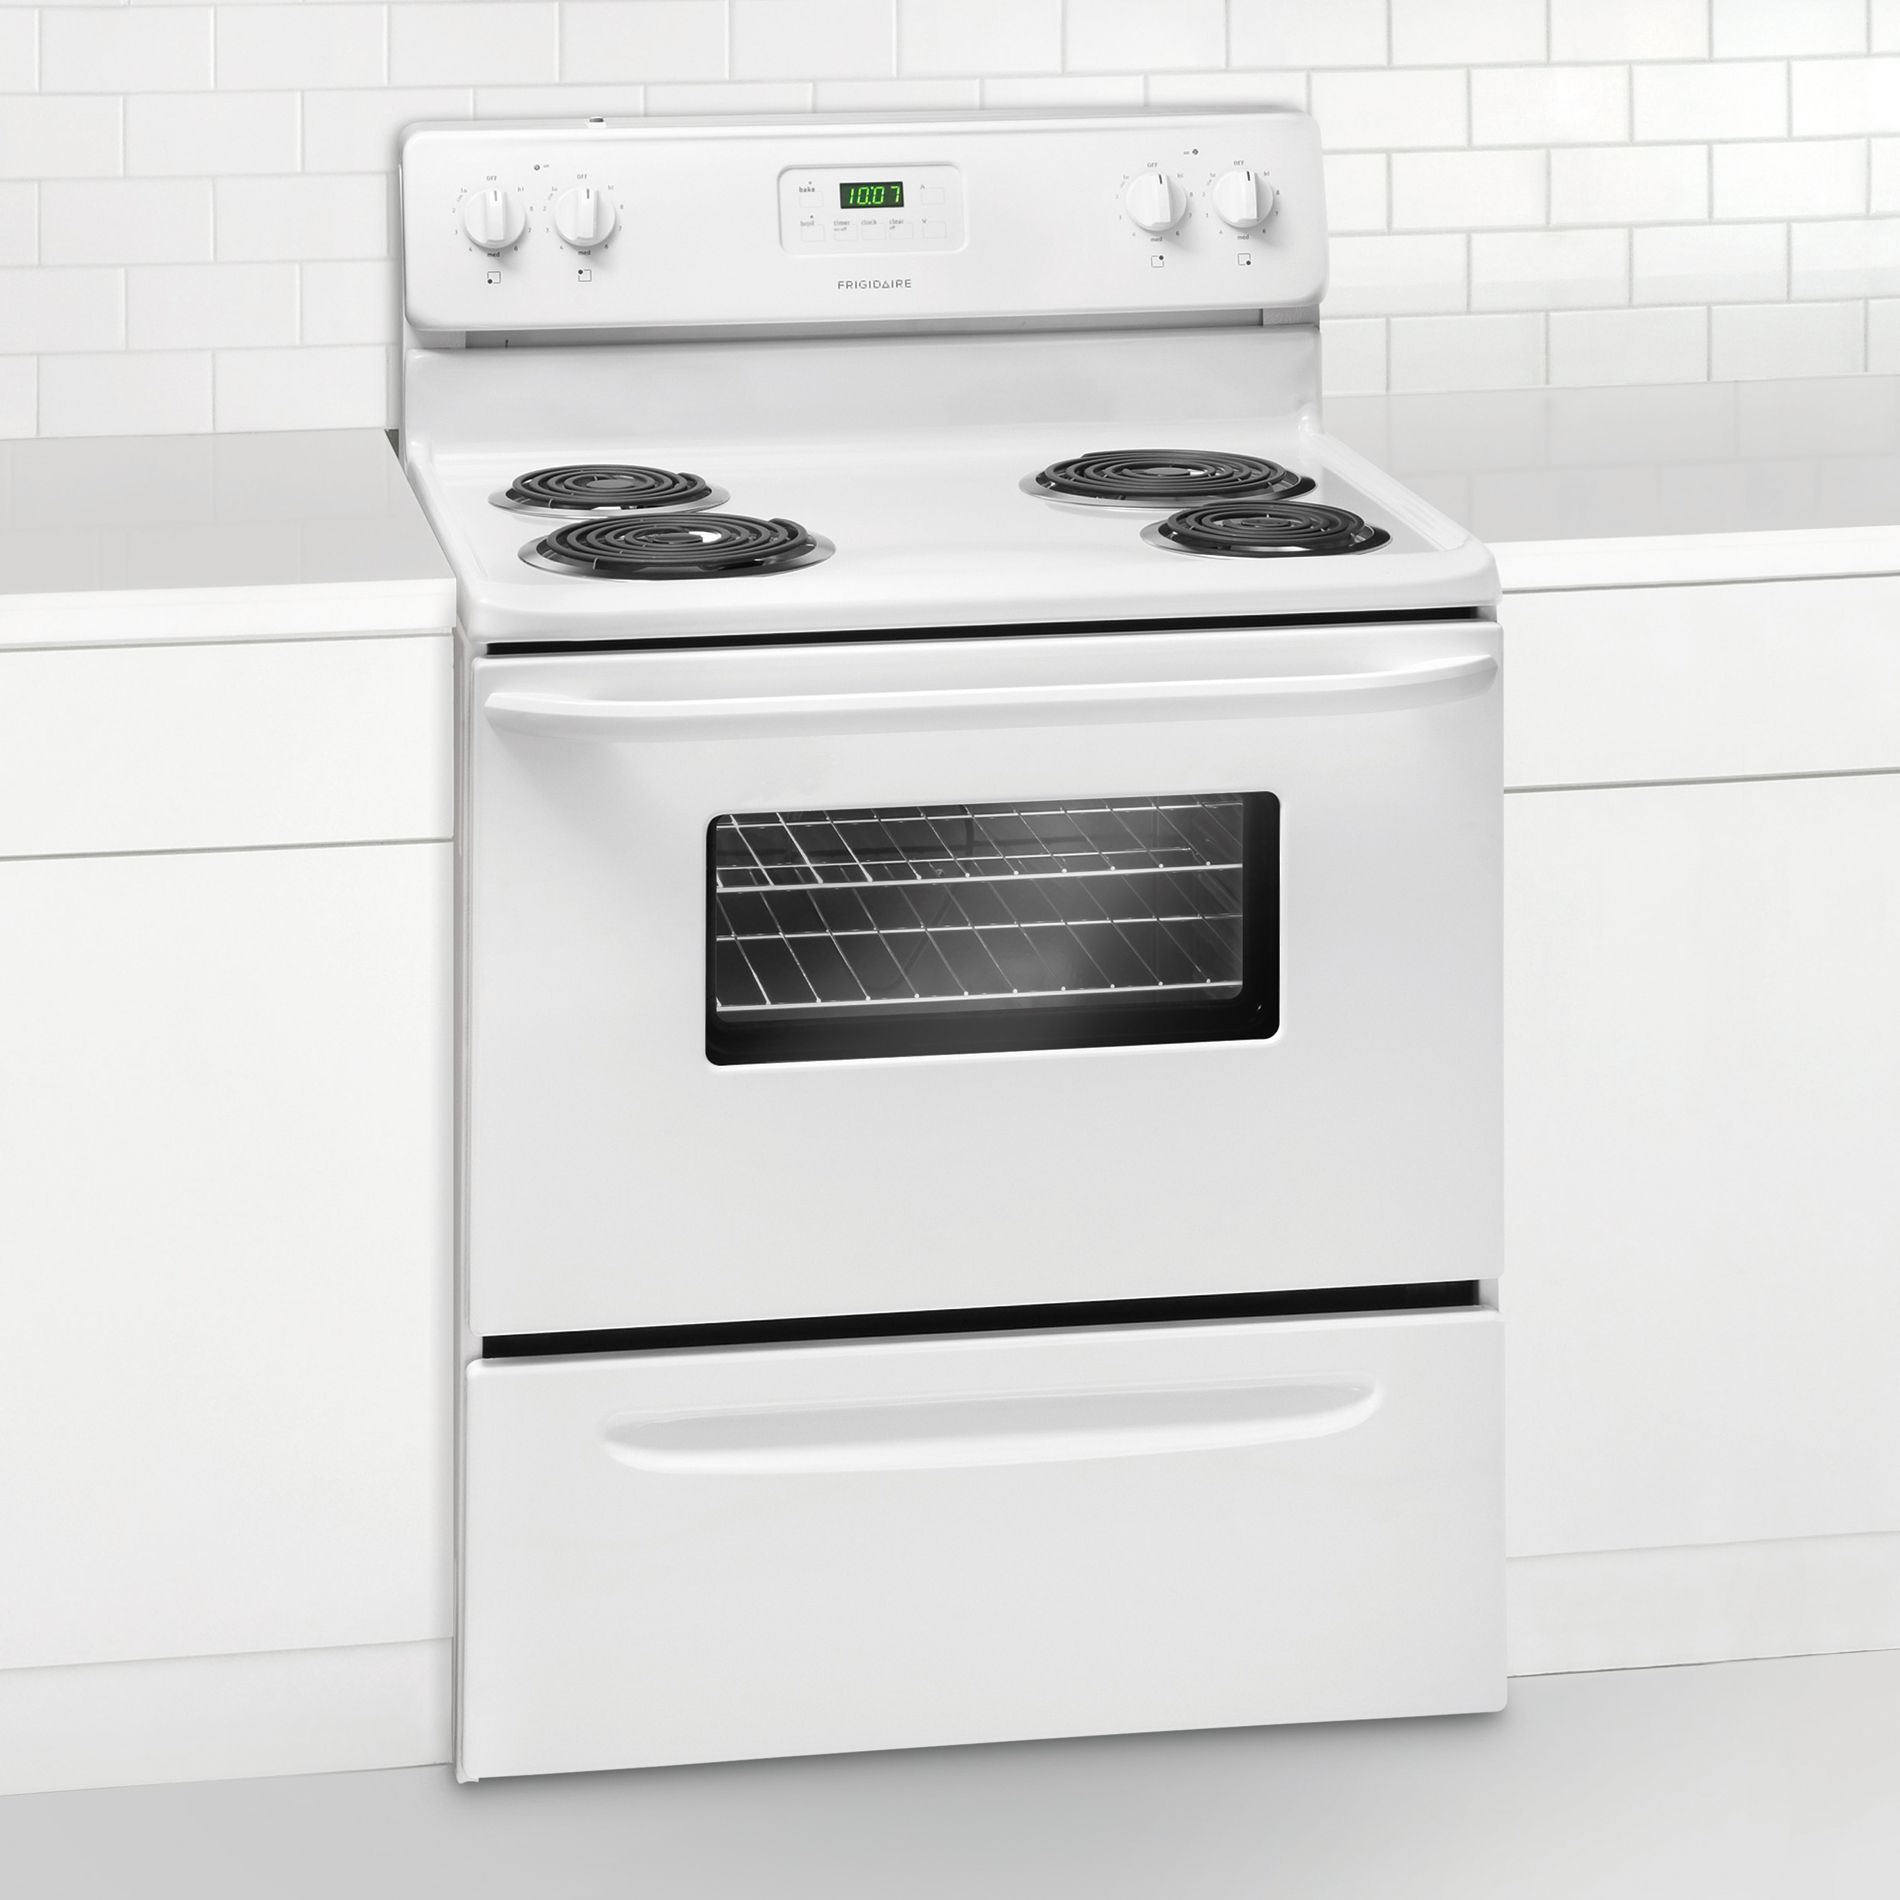 Frigidaire 4.8 cu. ft. Electric Range - White